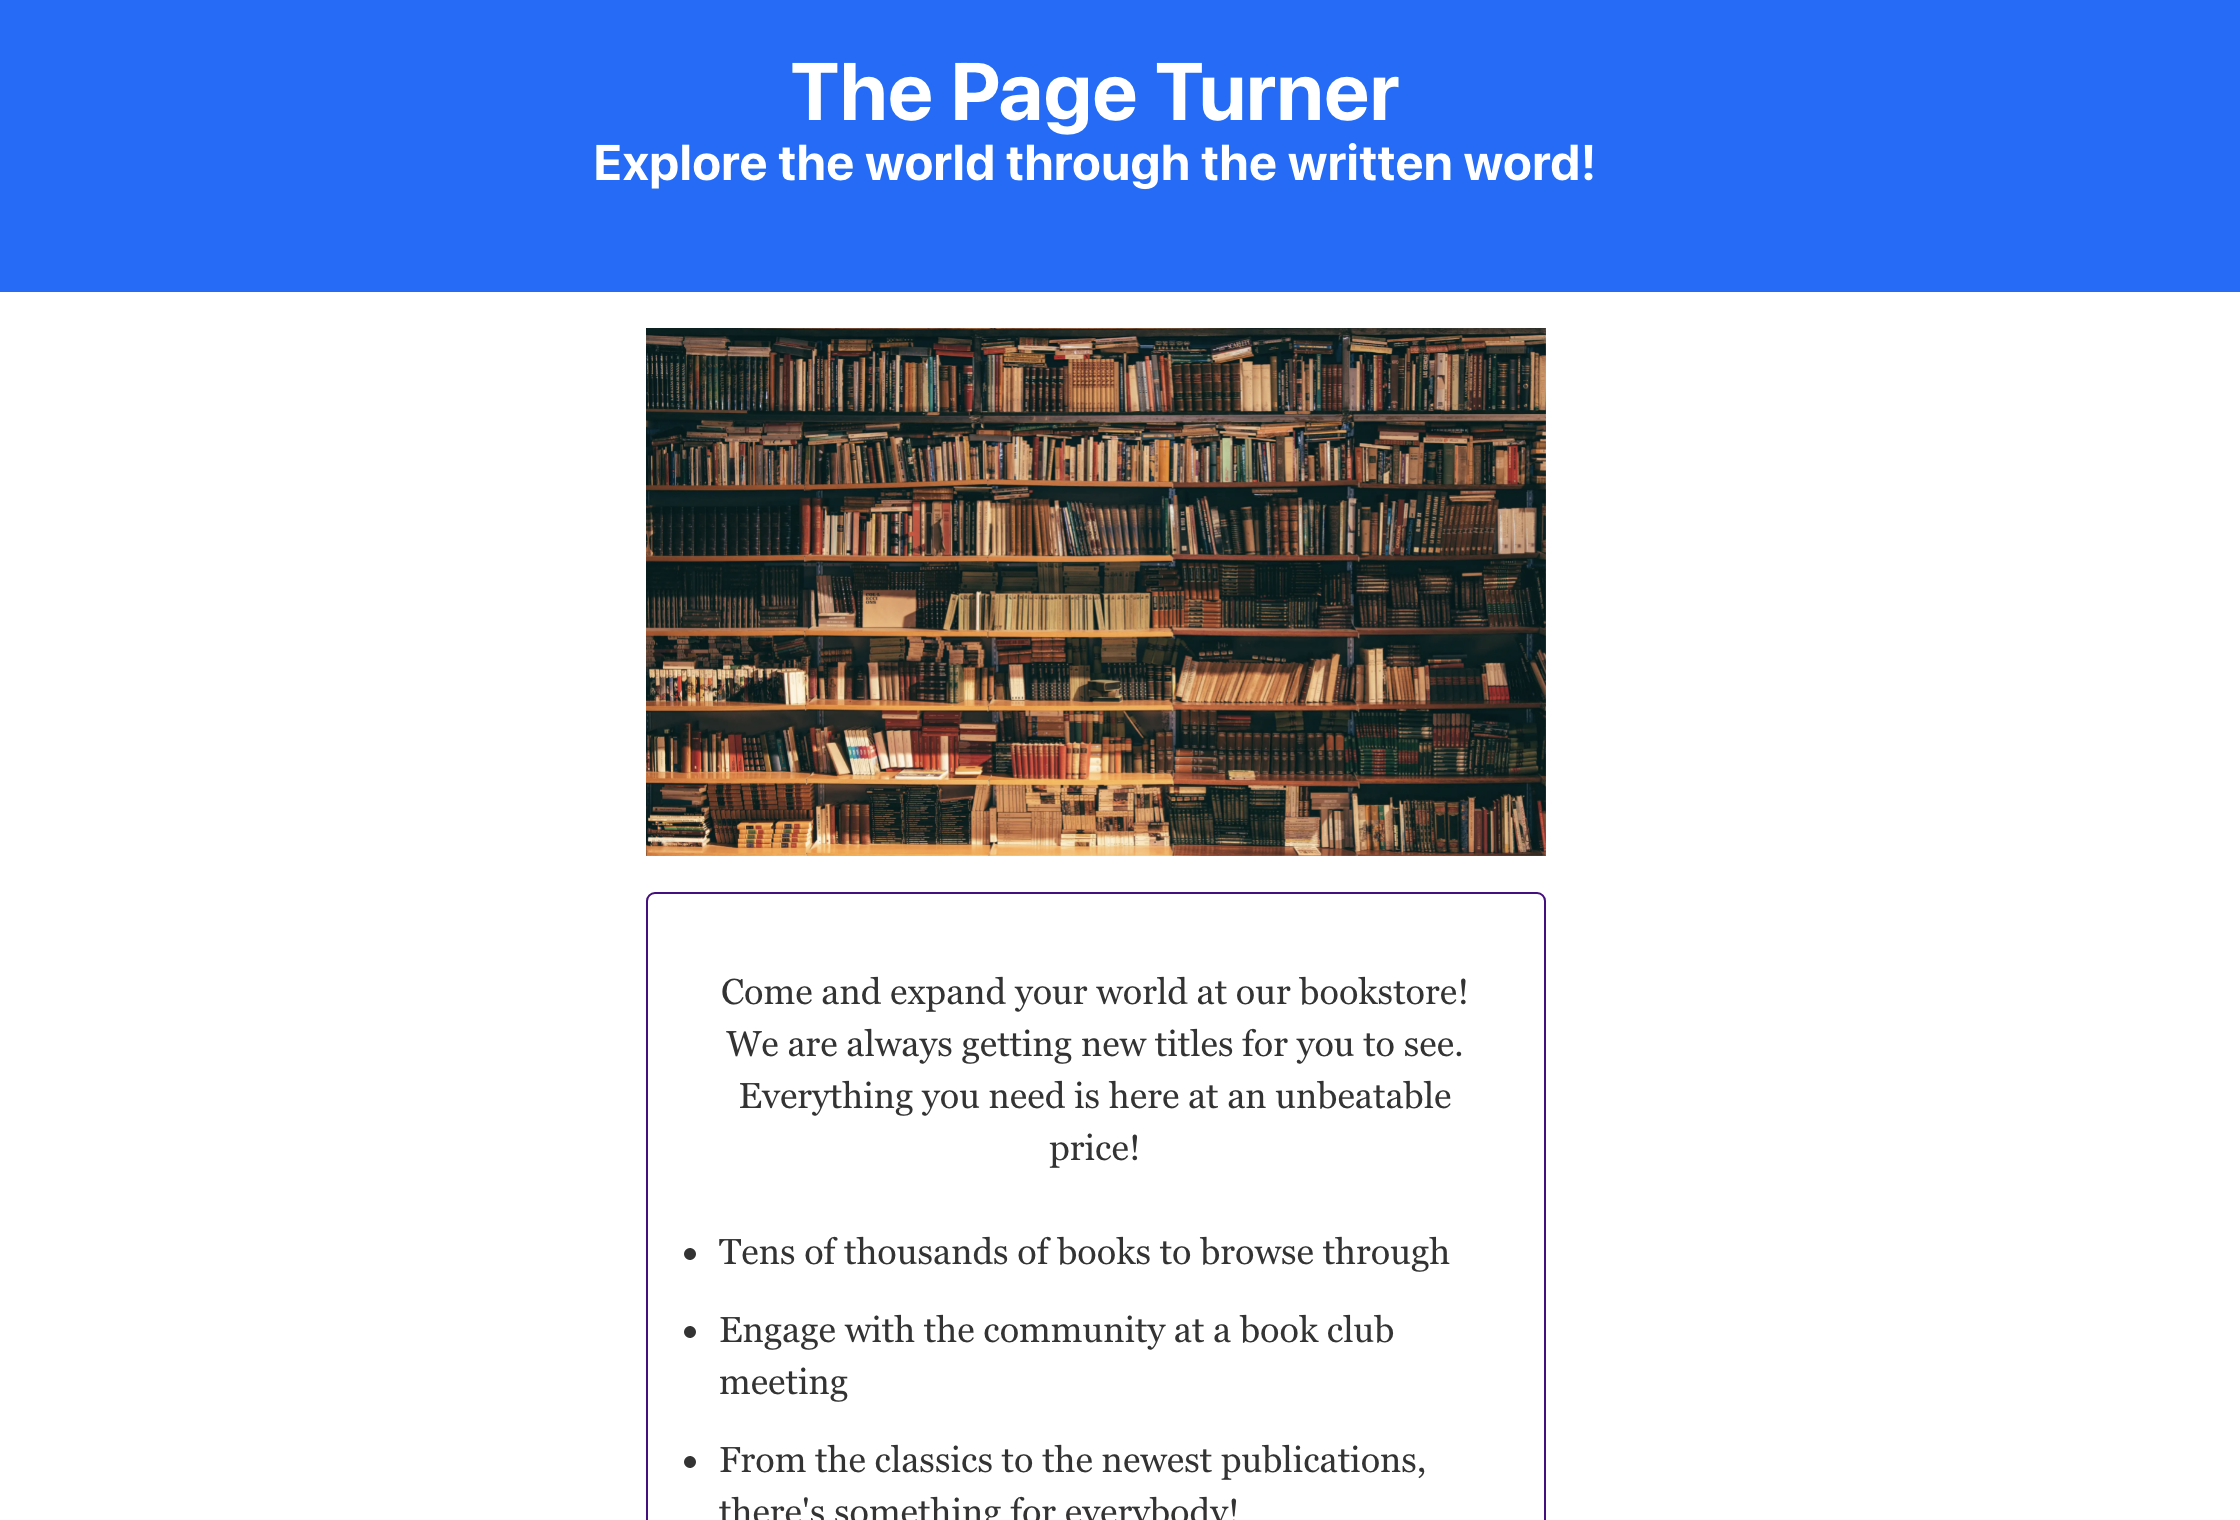 Resulting landing page from following this tutorial, displaying the header, hero image, and sales pitch